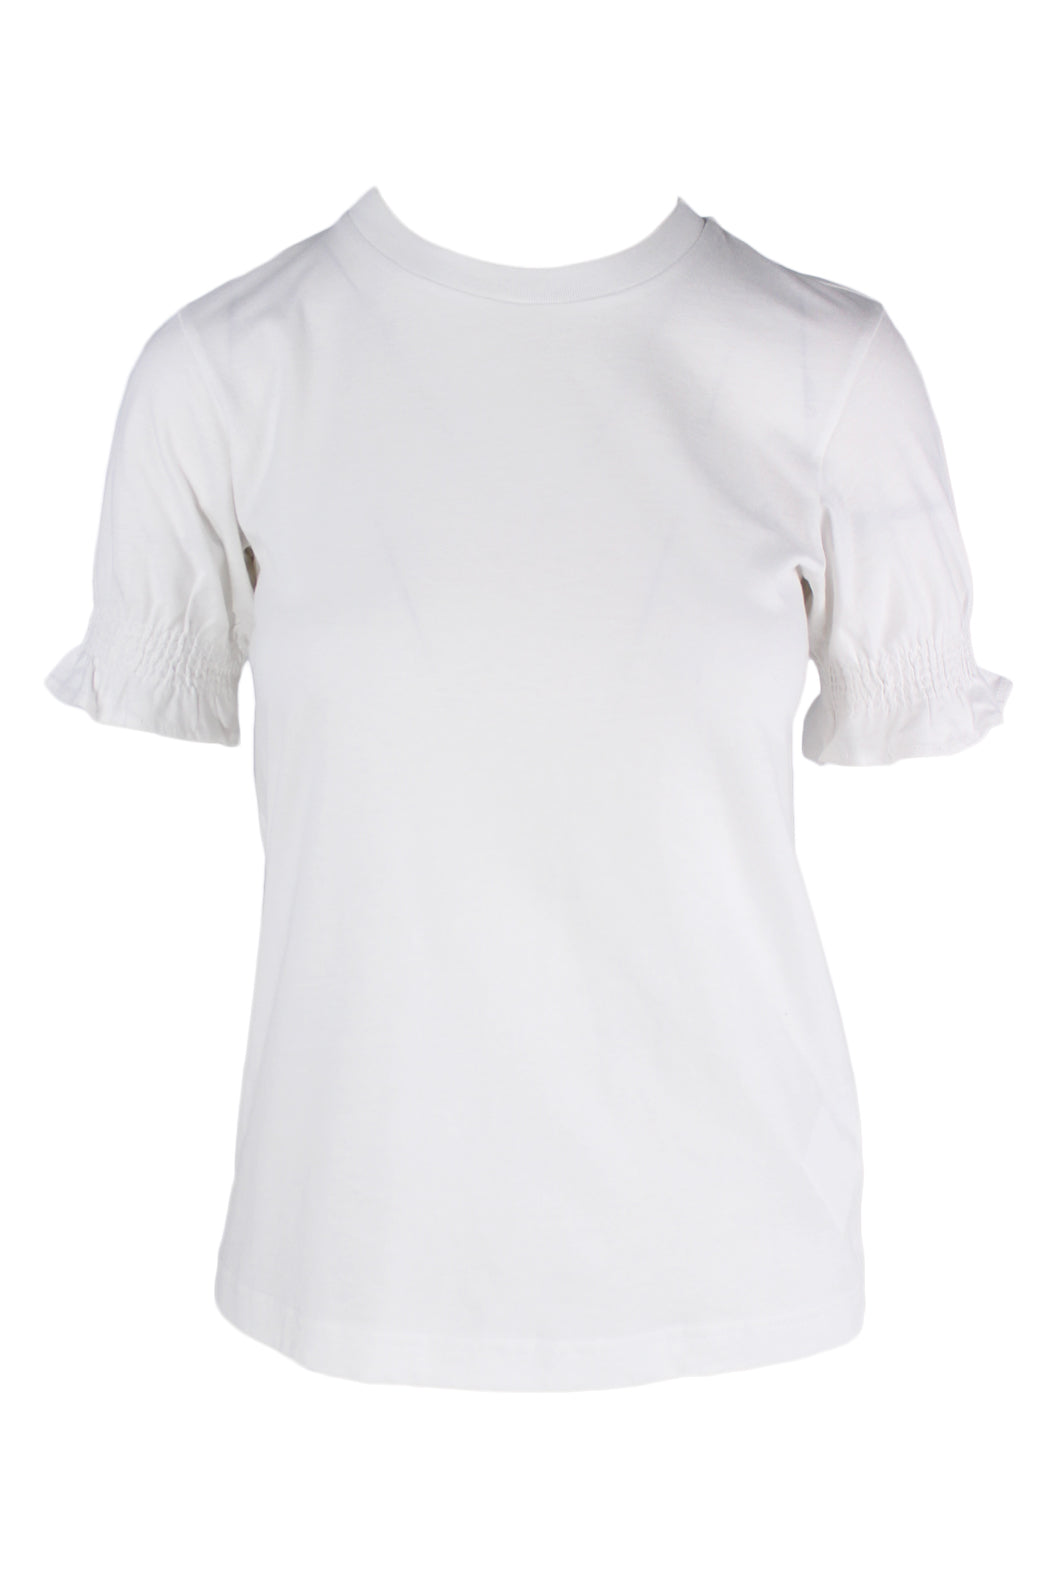 & other stories white short sleeve t-shirt. features ruched sleeve cuffs, and organic cotton material. tags attached.